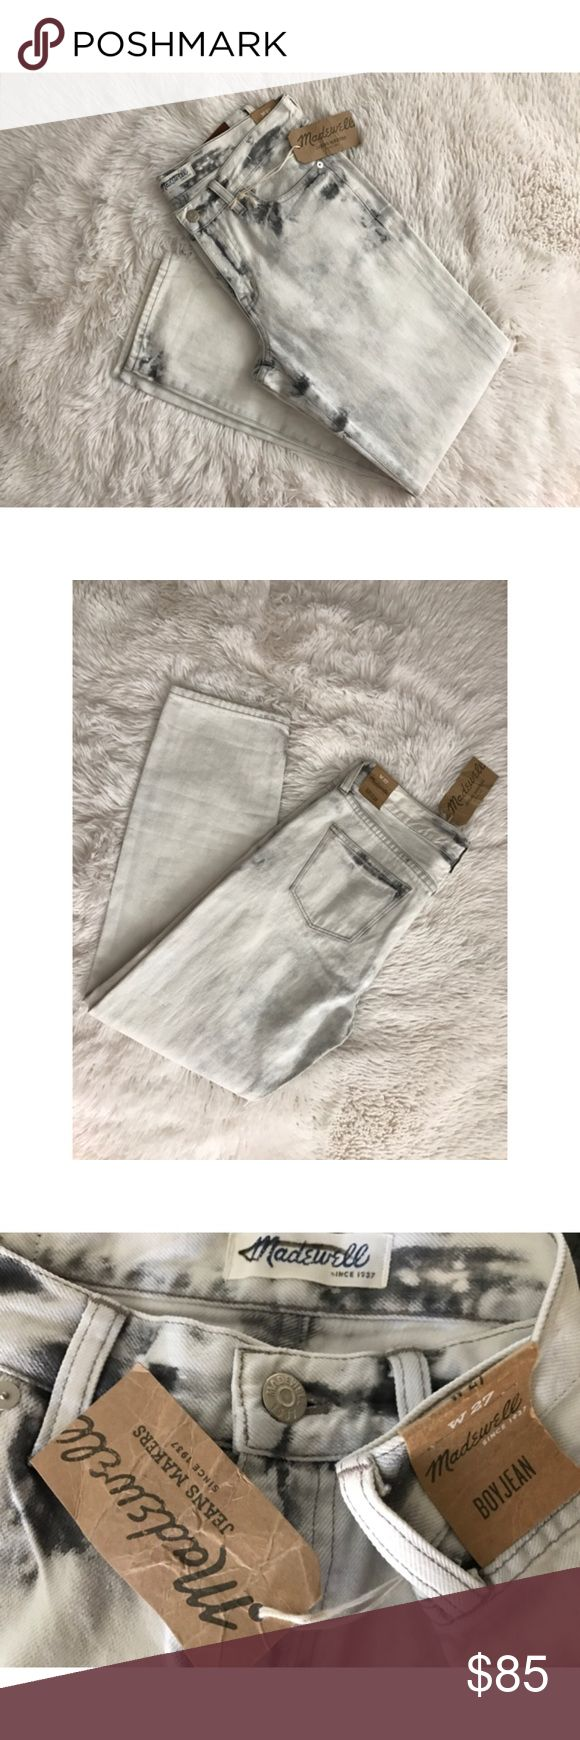 Madewell Boy Jean Tie Dye Bleached Smokey Denim 🆕 W/ RETAIL TAGS, NEVER WORN ✖️NO TRADES • NO PP • NO MERC@RI  ✔️ADD'L INFO/PICS BY REQUEST ✔️POSTED = AVAILABLE  ✔REASONABLE OFFERS WELCOMED ✔BUNDLE 2+ FOR 10% DISCOUNT Madewell Jeans Boyfriend